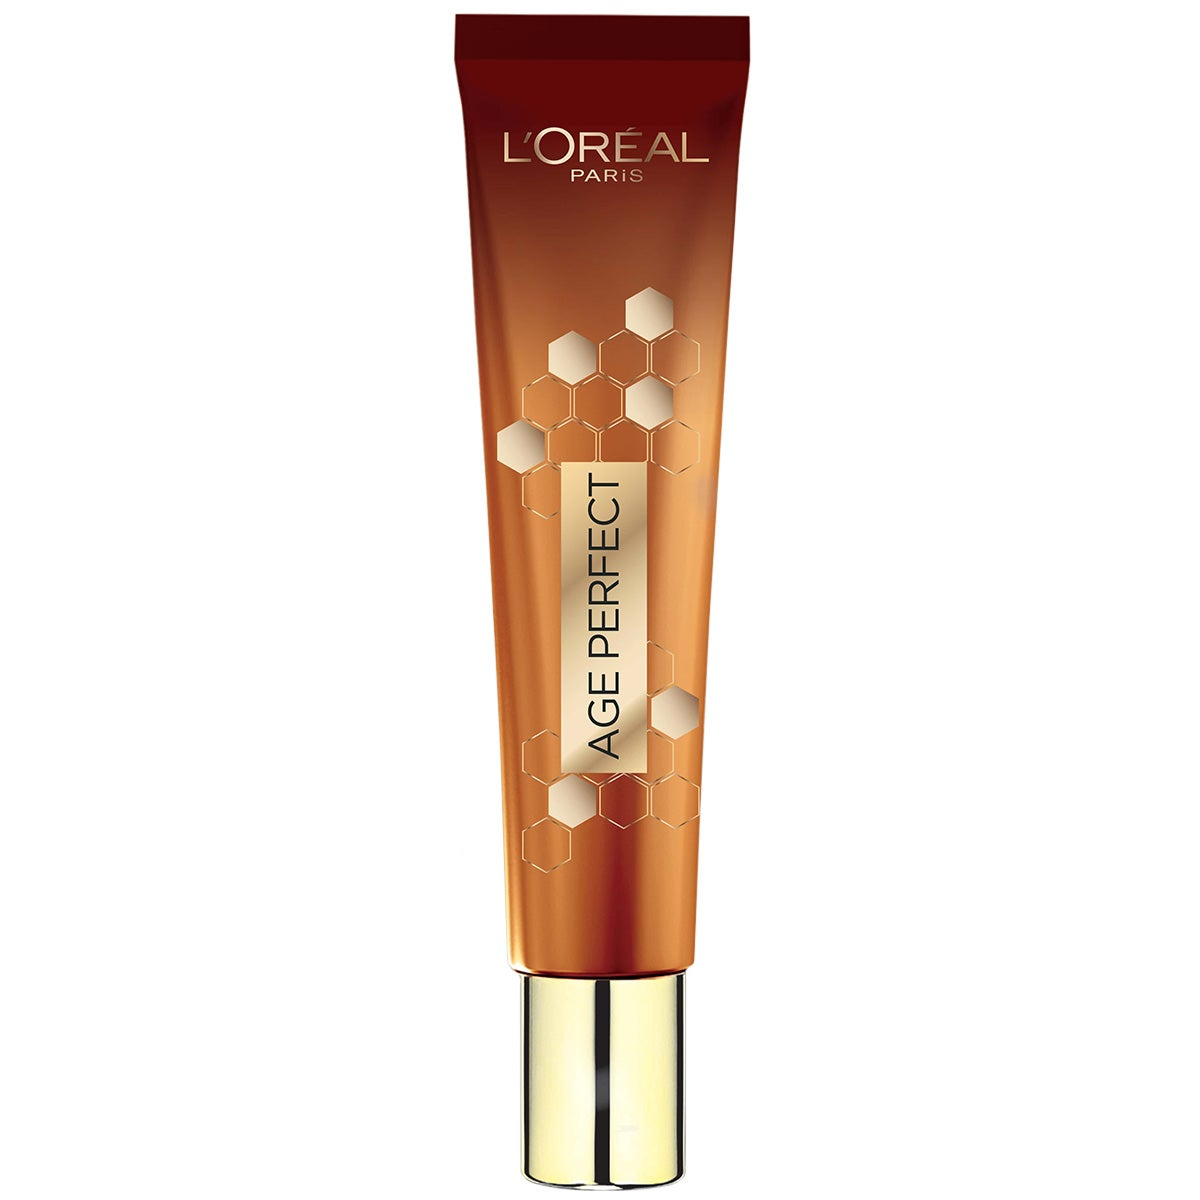 L'Oréal Paris Age Perfect Intense Nutrition Face Care